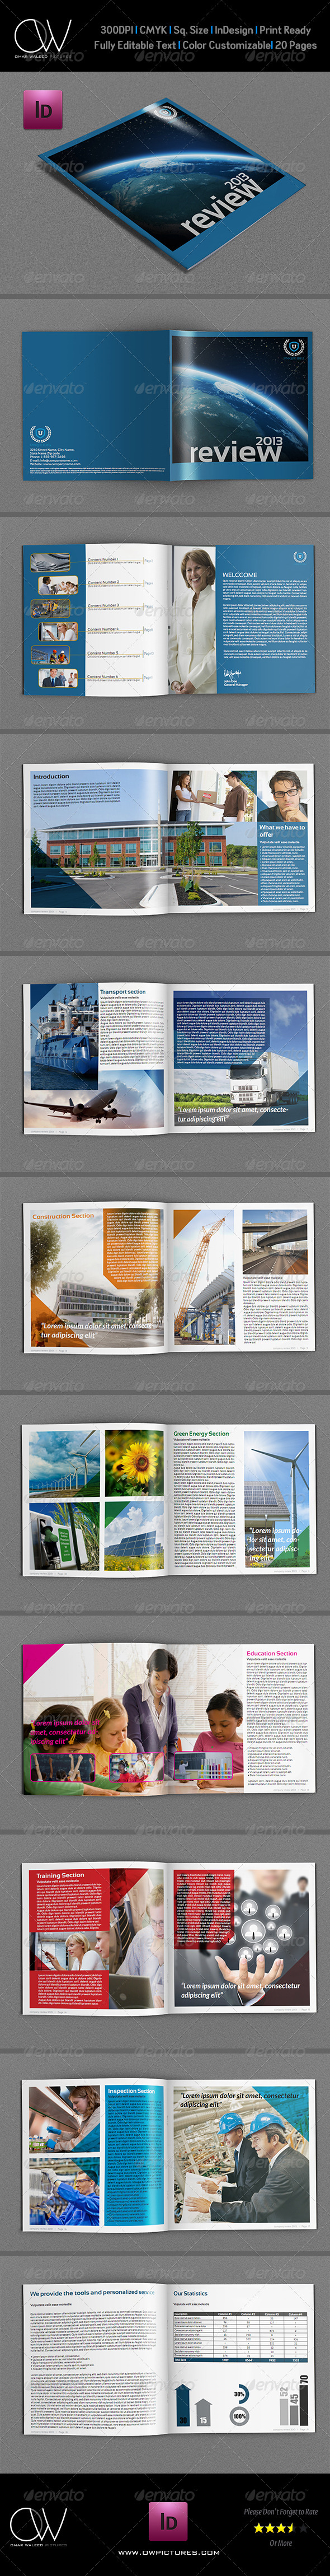 Company Brochure Template Vol.7 - 20 Pages - Brochures Print Templates